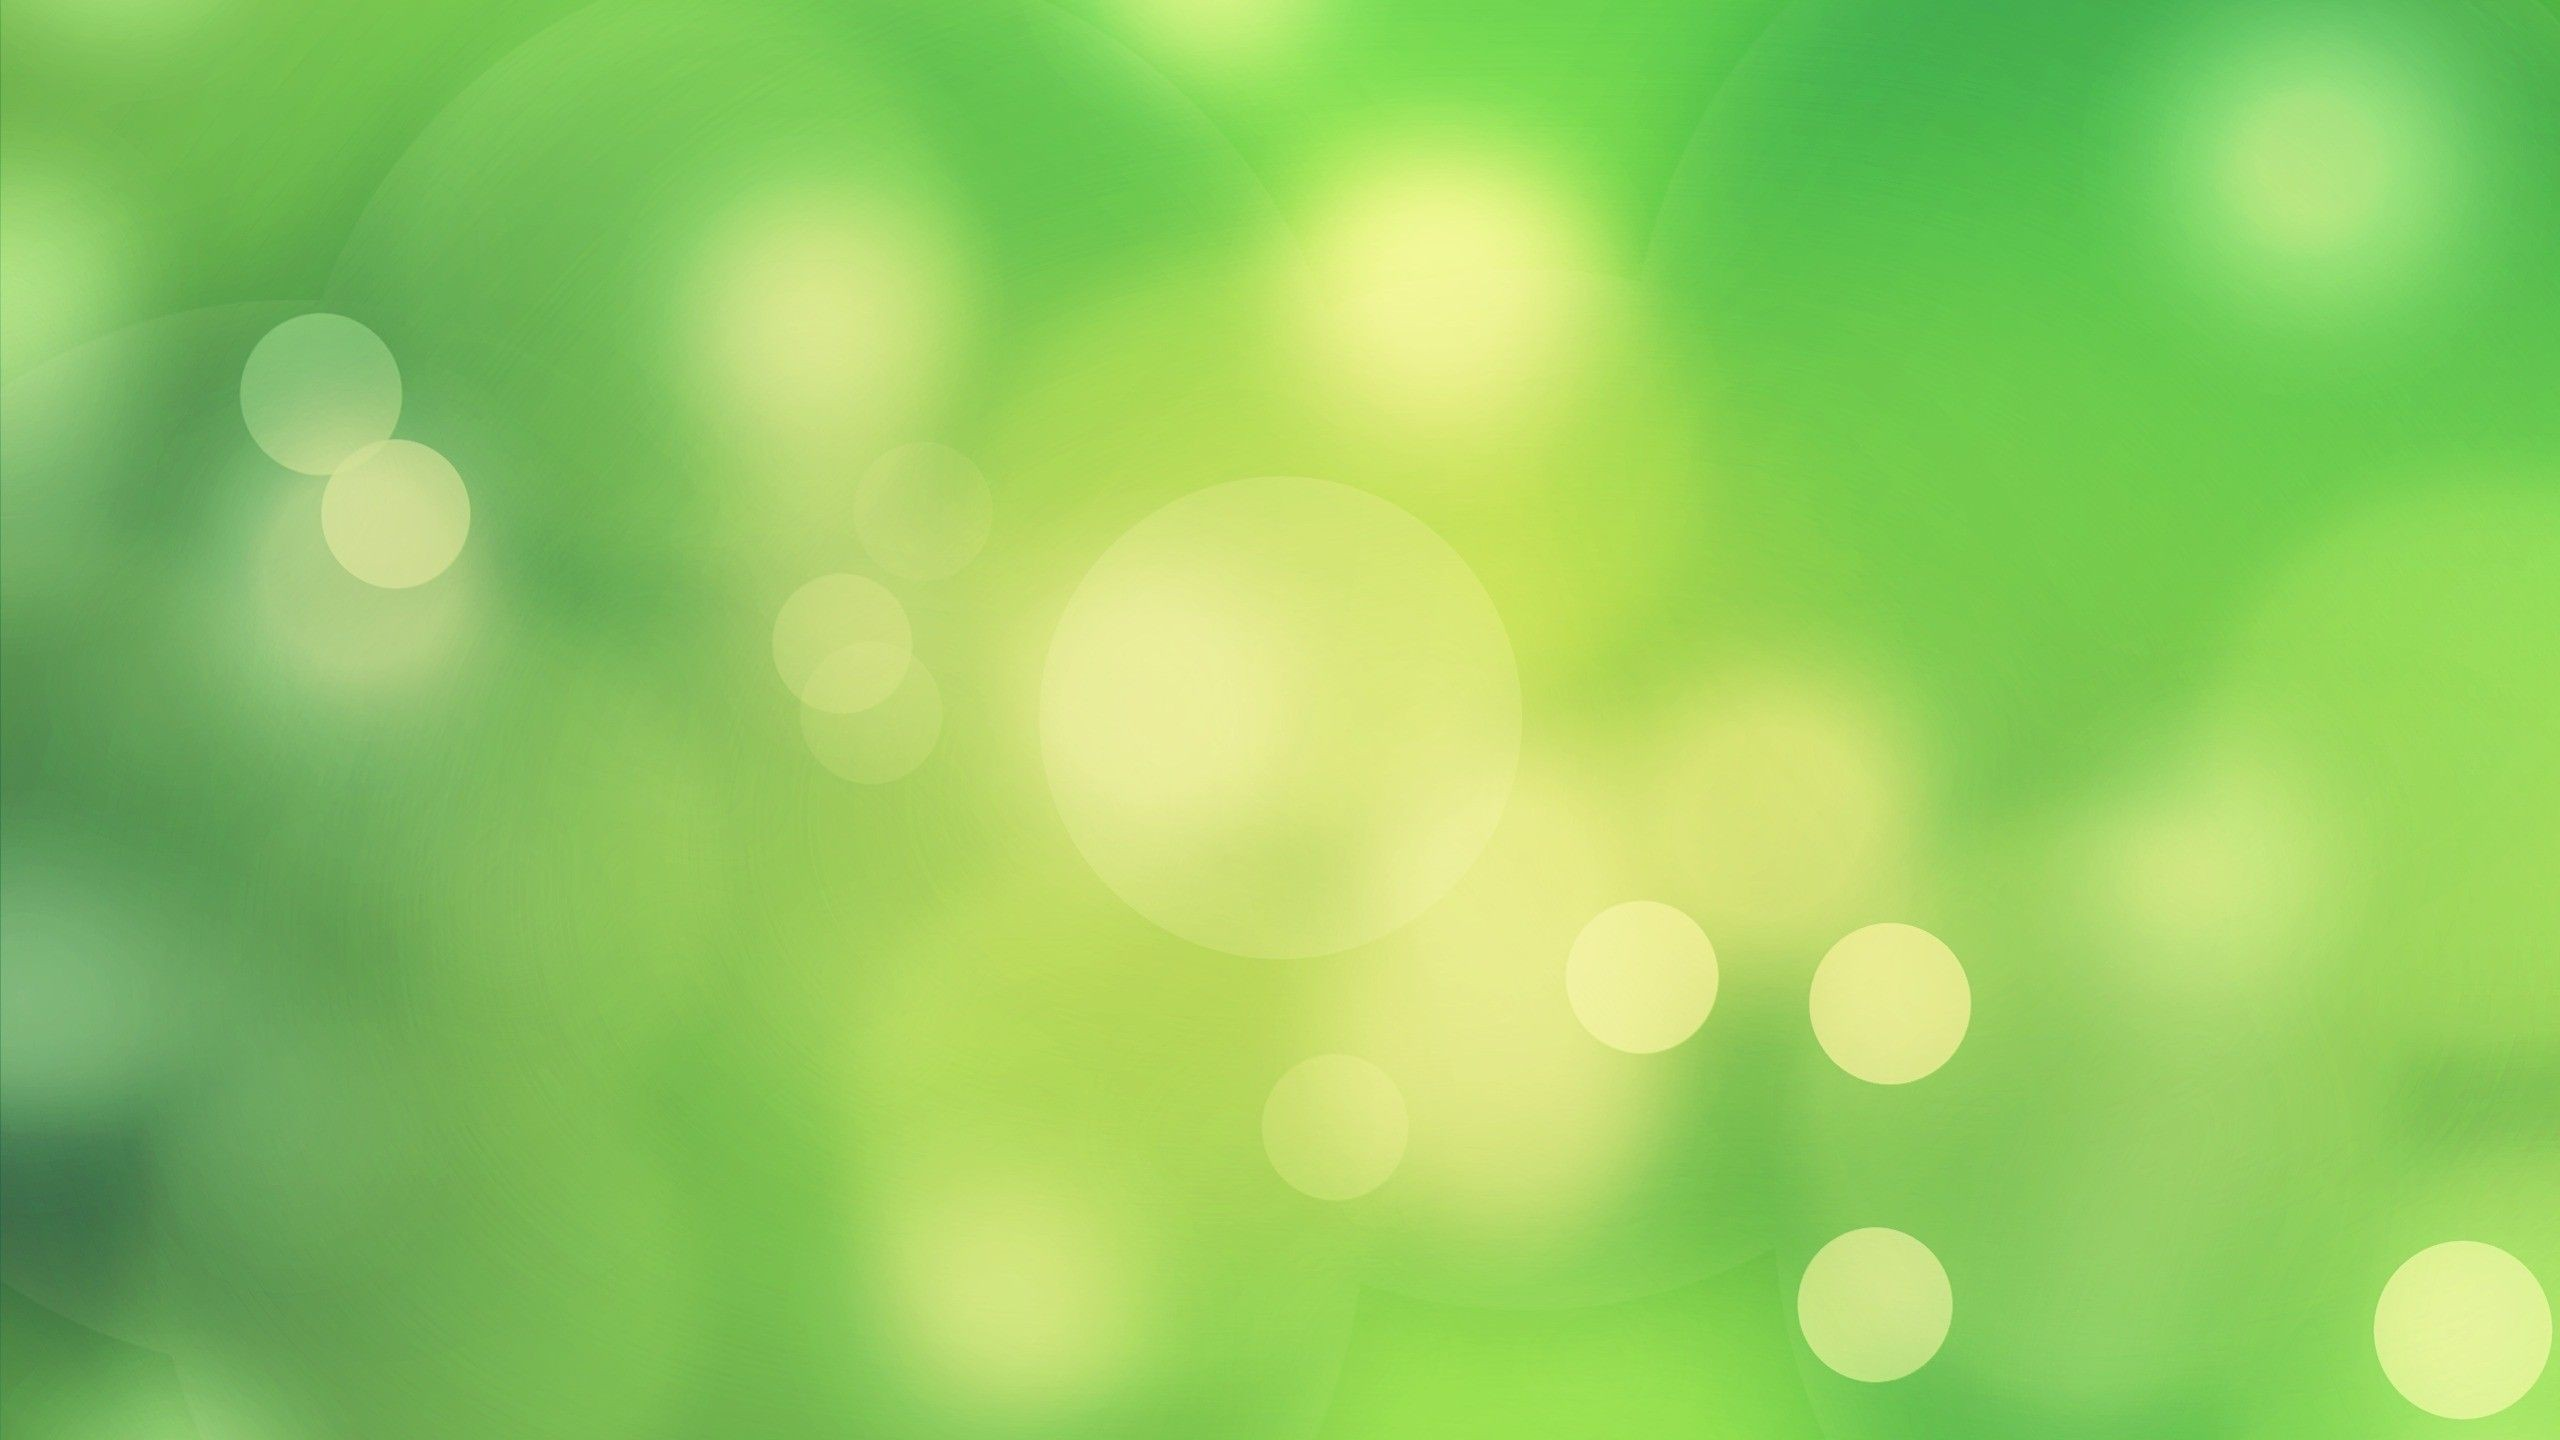 Green wallpaper download free beautiful backgrounds for amazing green wallpaper 1920x1200 voltagebd Choice Image